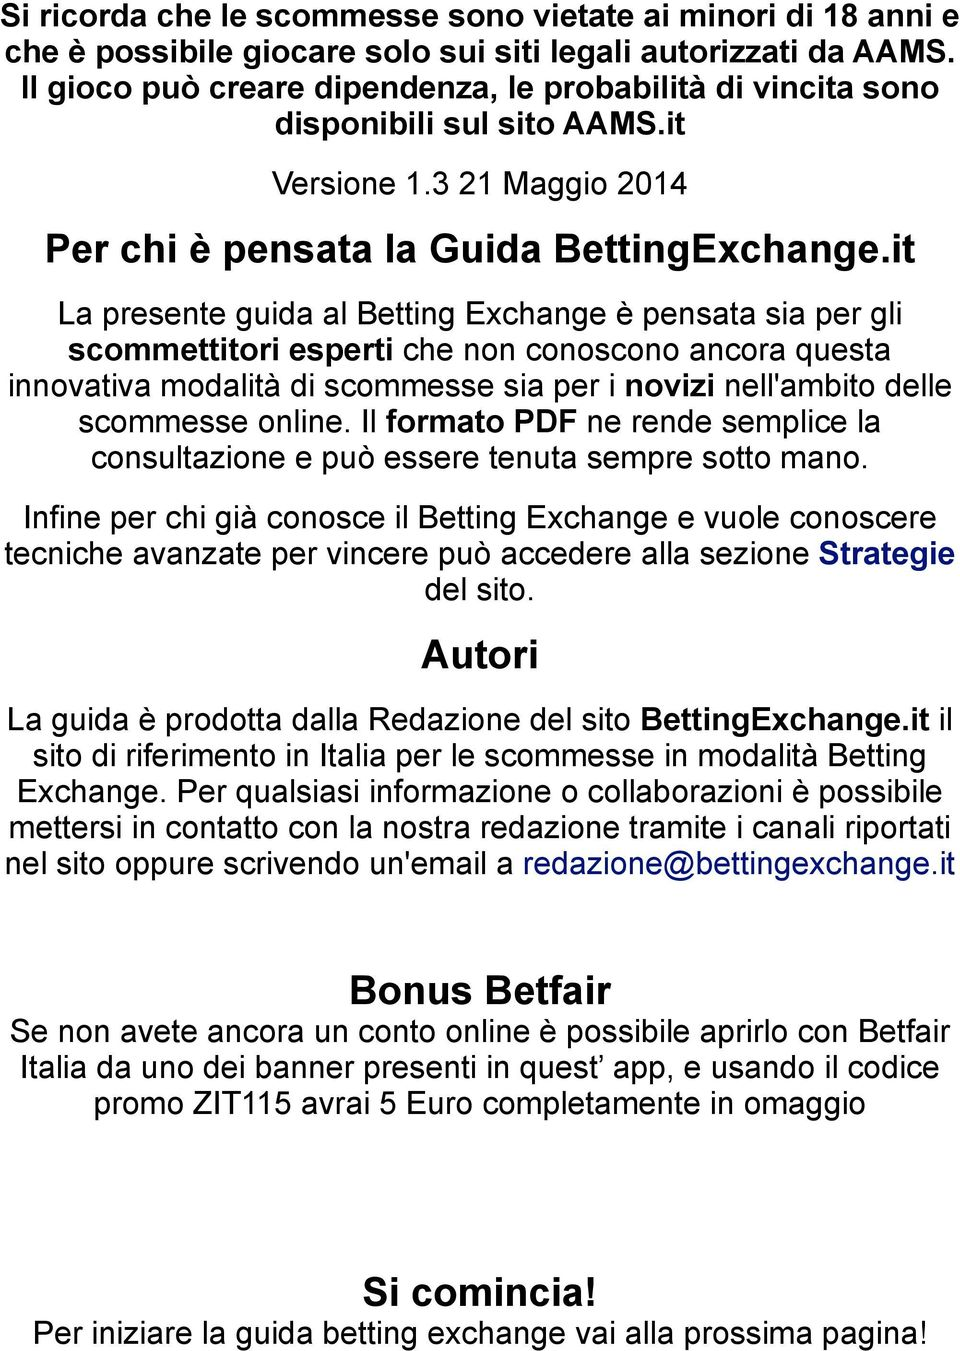 Strategia trading binario